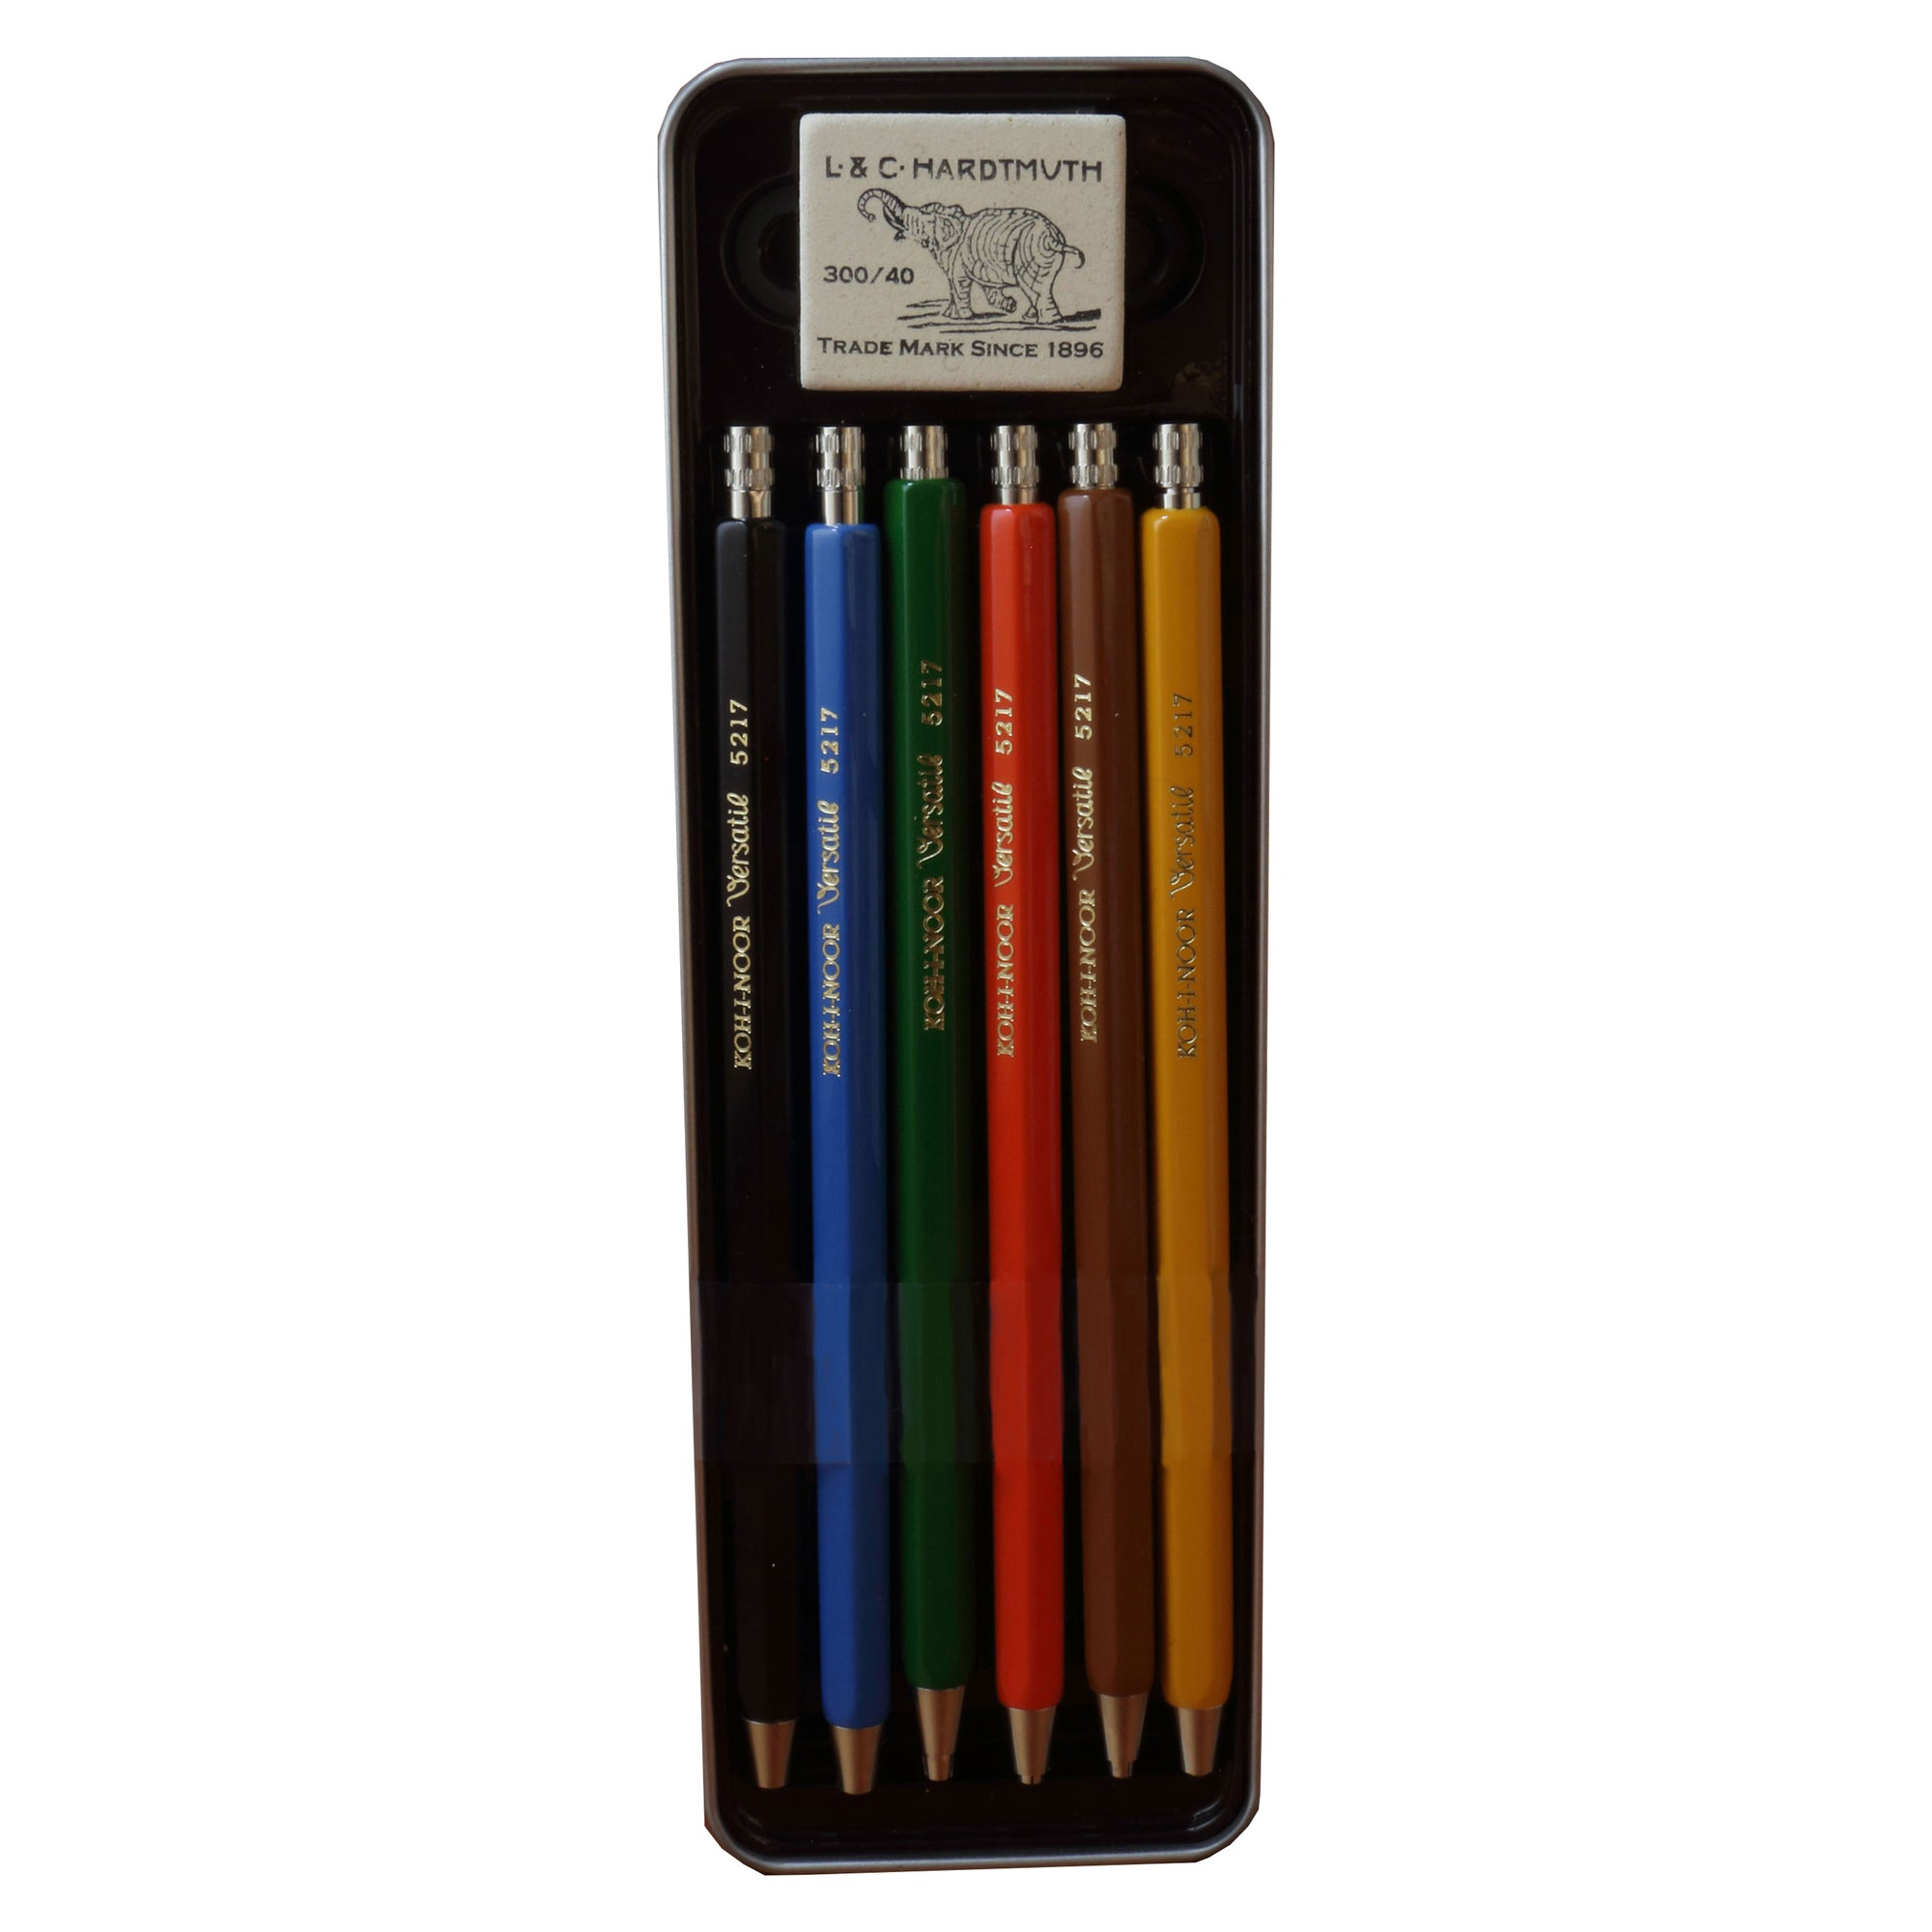 Set de portaminas Koh-I-Noor Versatil 5217 de colores